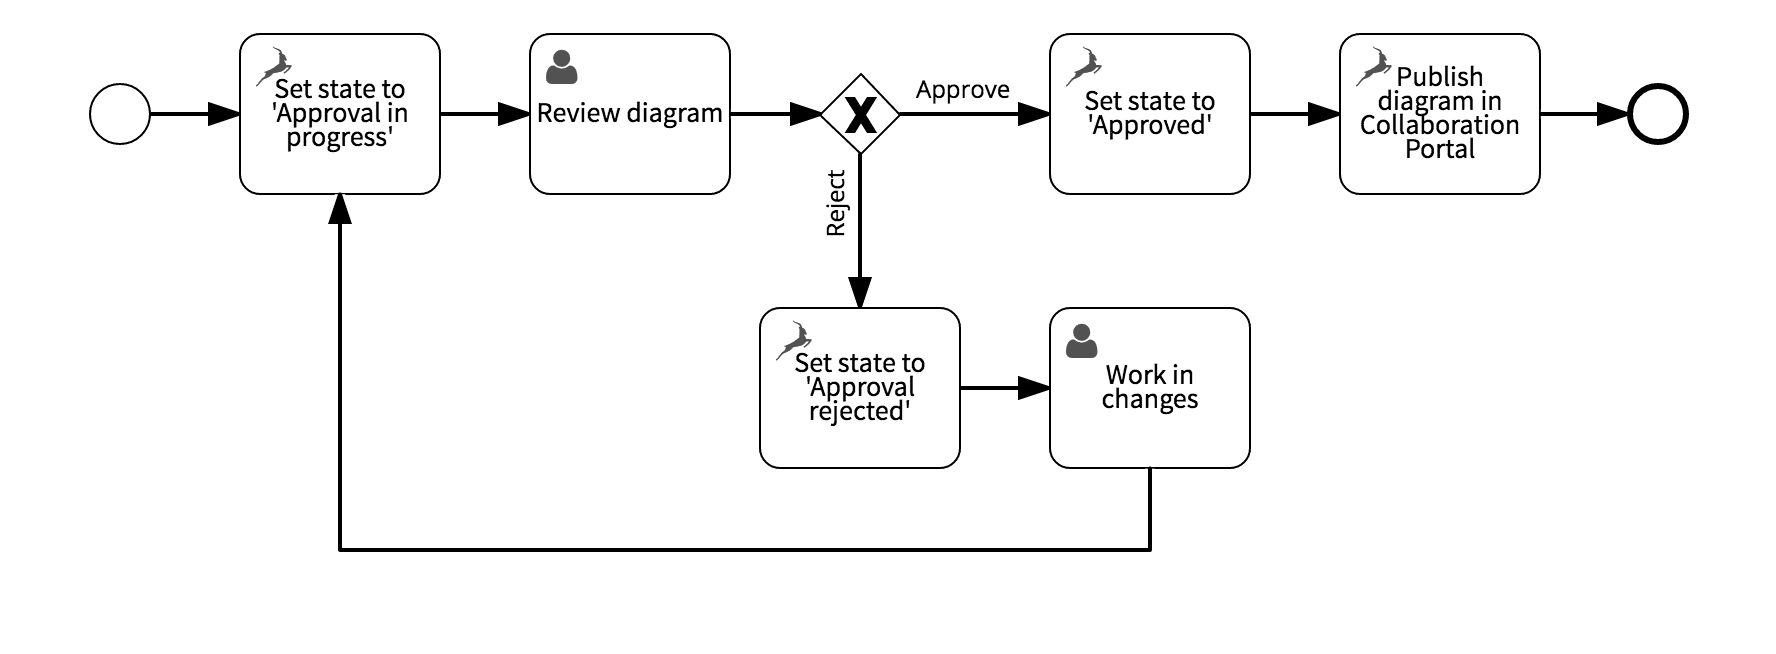 BPMN_Diagramm_Approval_Workflow